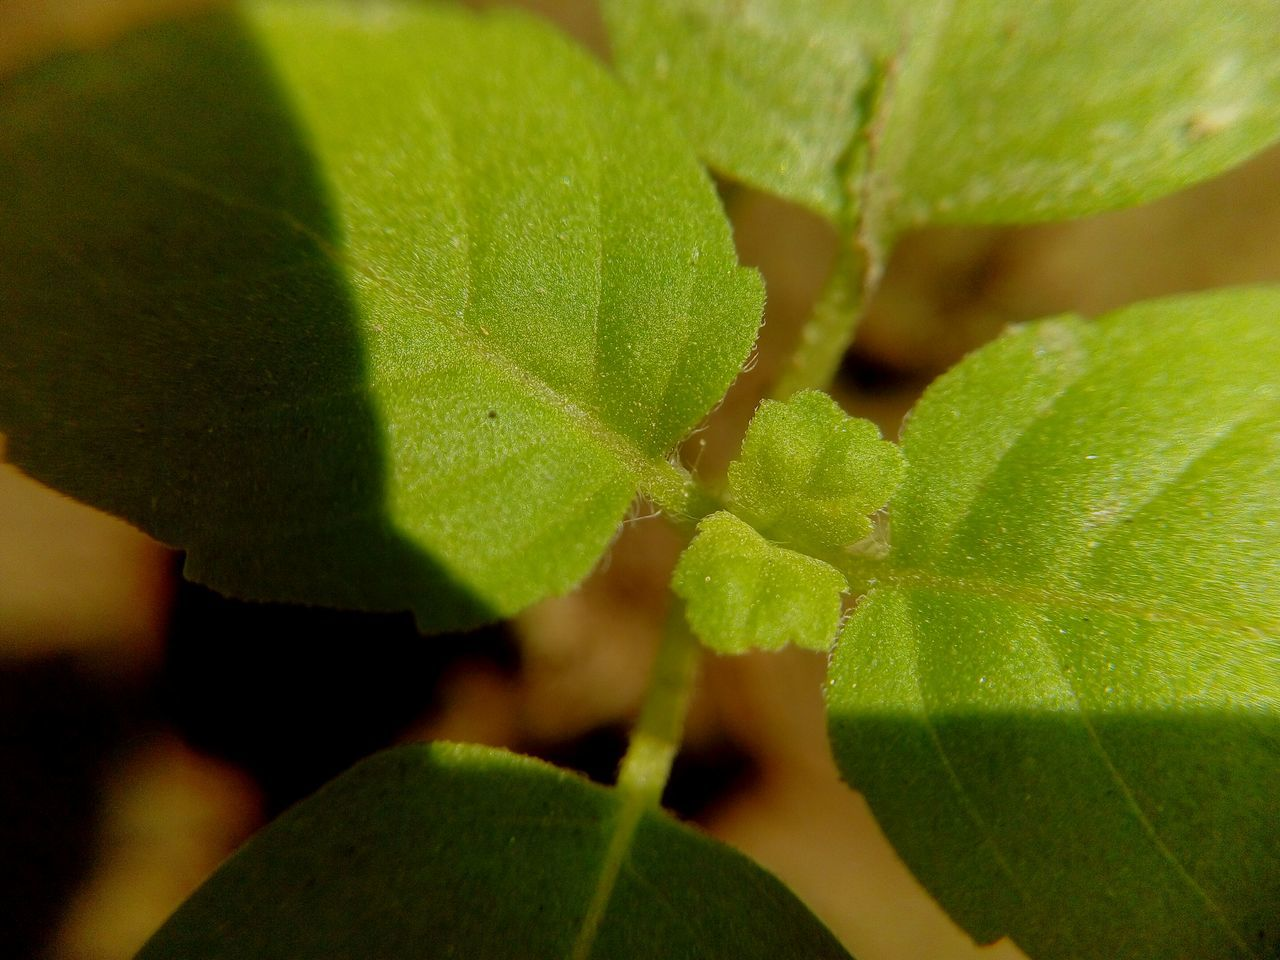 Animal Themes Beauty In Nature Close-up Day Green Color Growth Insect Leaf Nature No People Outdoors